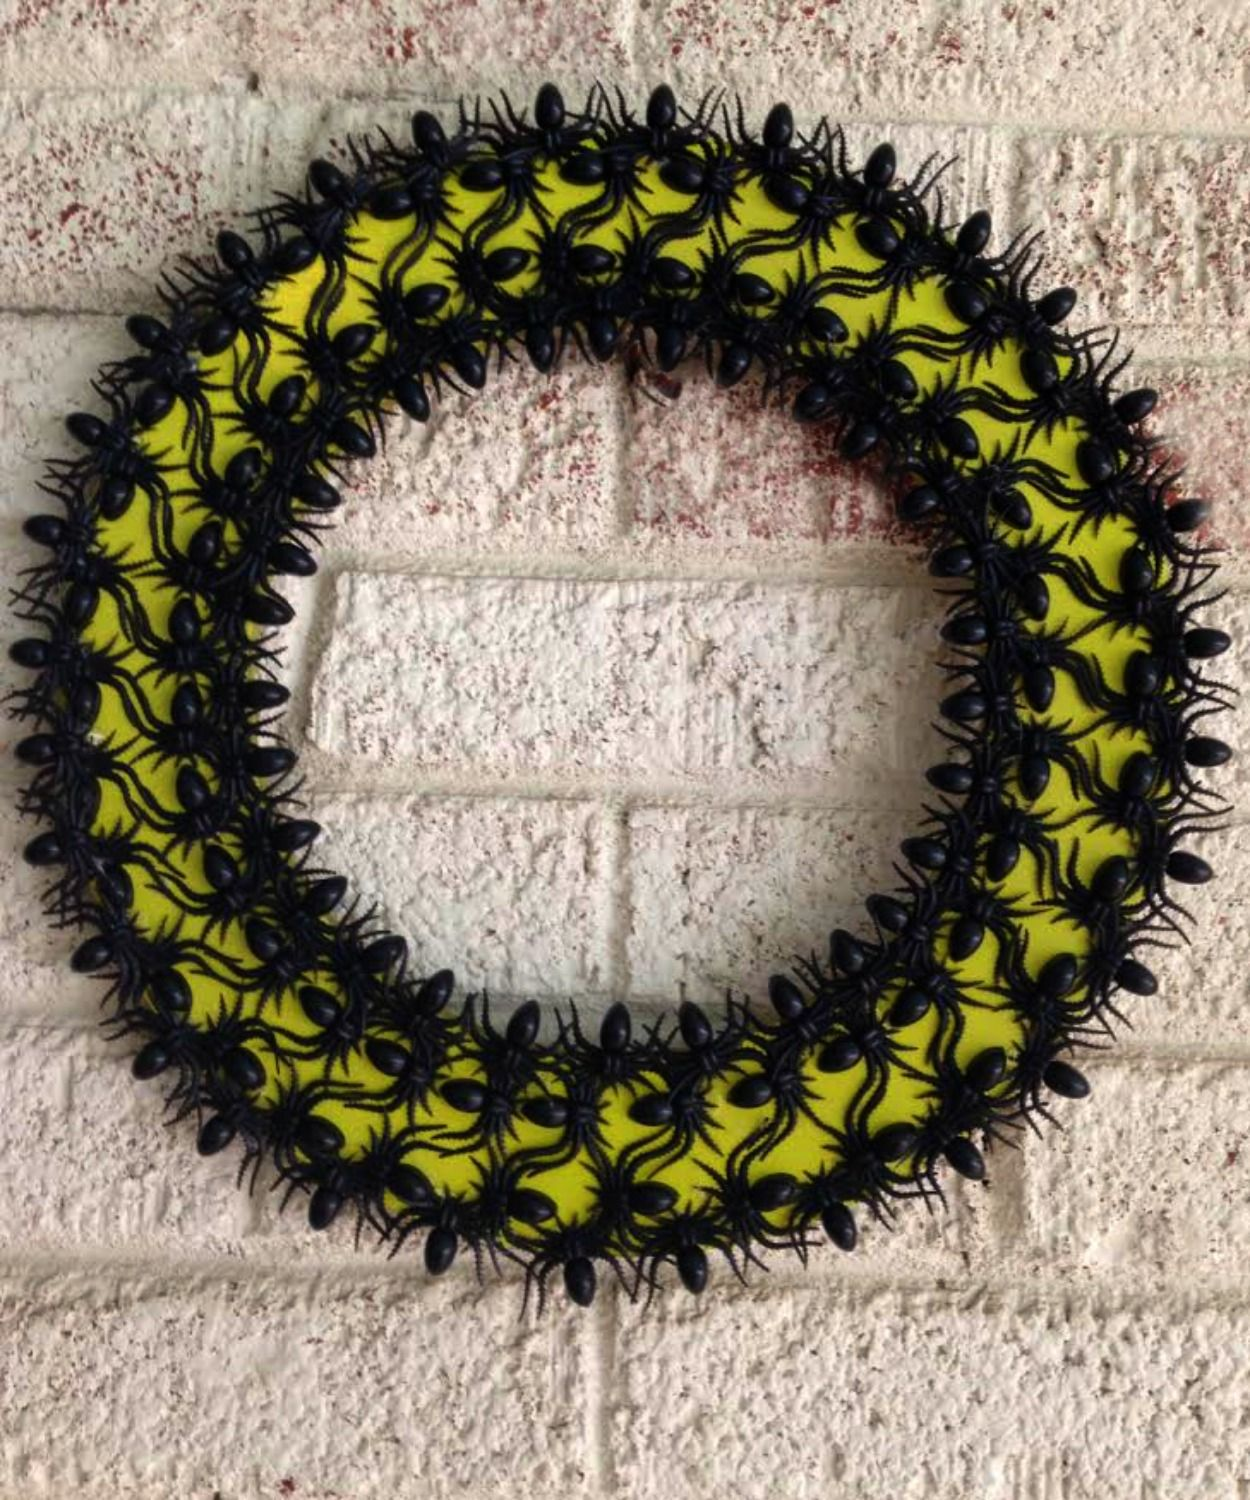 This sophisticated spooky Spider Wreath will look great hanging on a wall or outside welcoming guests. Make this simple spider wreath with a few simple supplies!